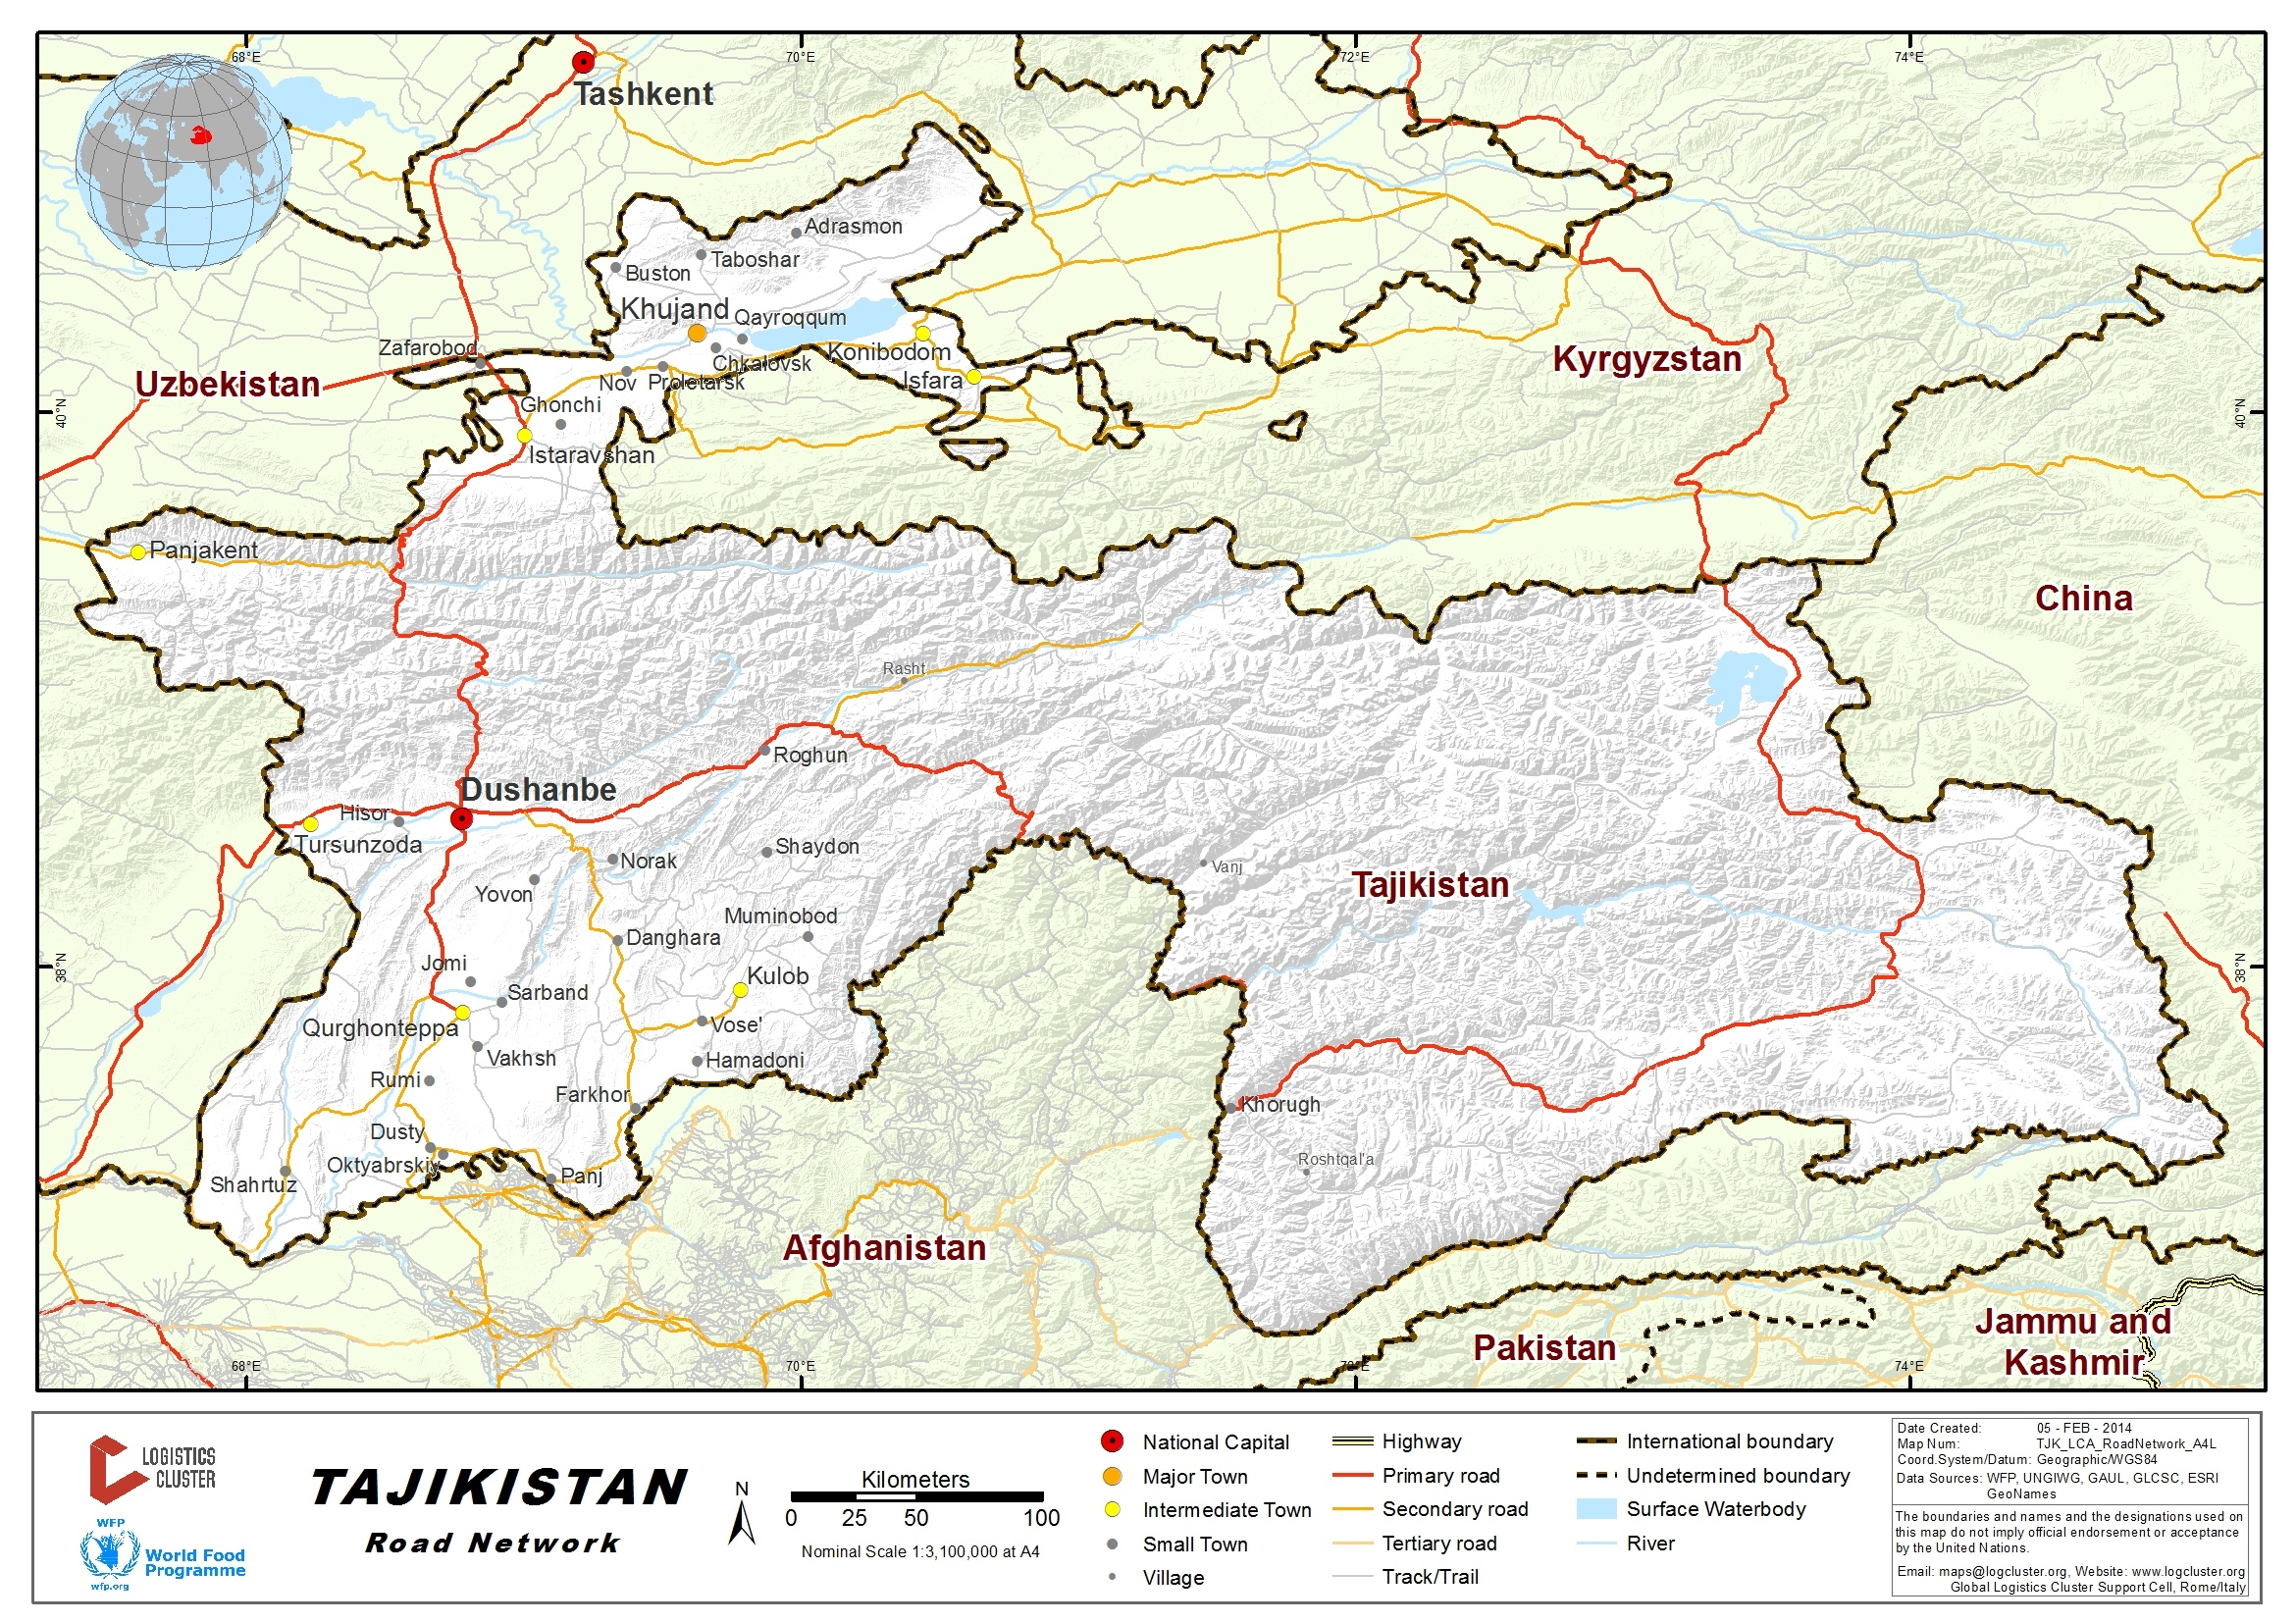 Tajikistan Road Network Logistics Capacity Assessment - Dushanbe map